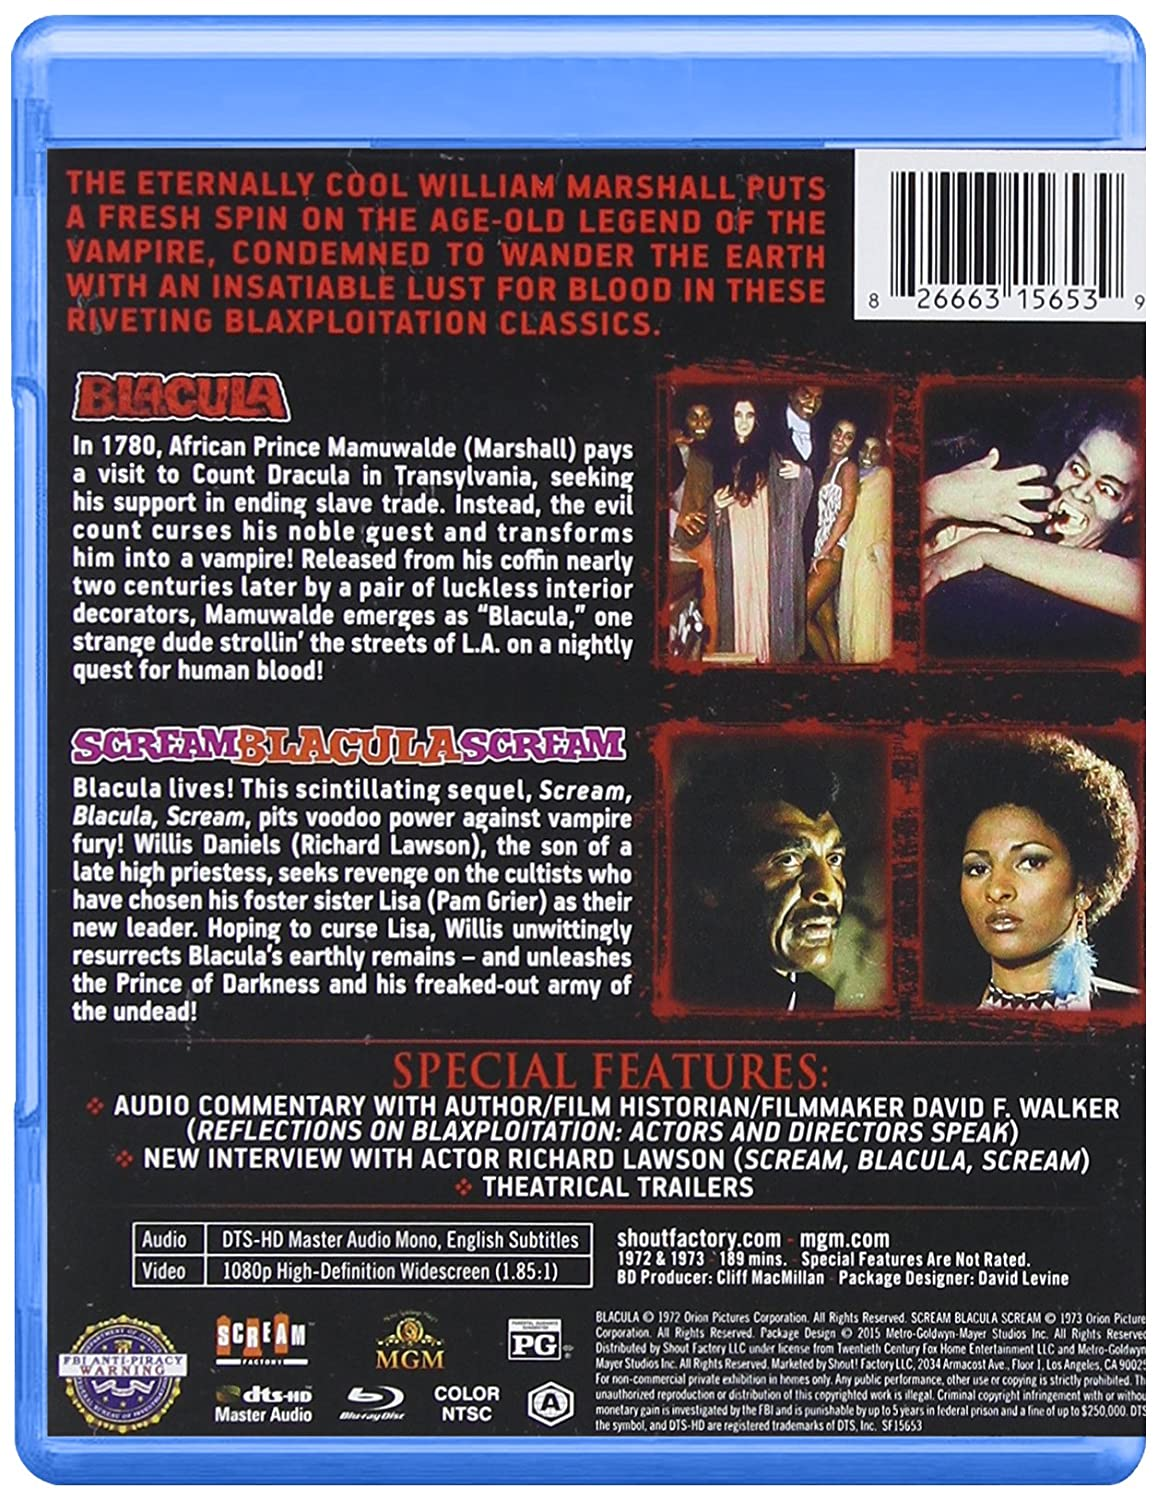 Amazon.com: Blacula / Scream Blacula Scream [Blu-ray]: William Marshall, William Crain: Movies & TV